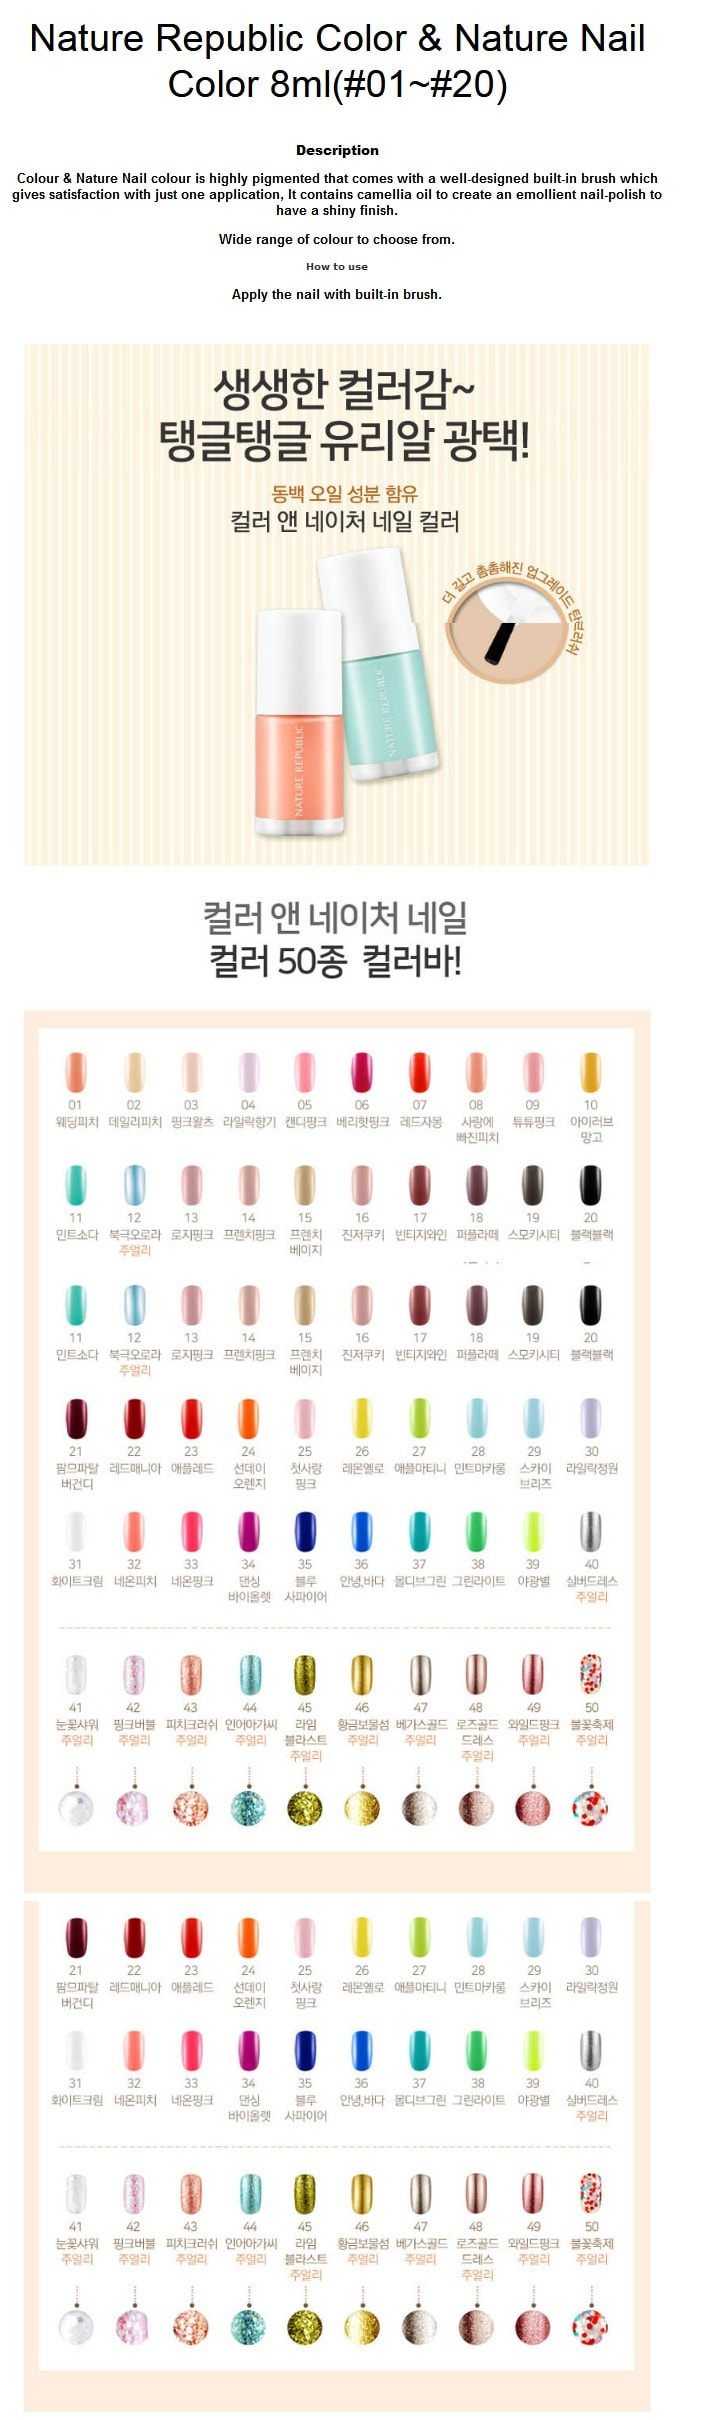 NATURE REPUBLIC Color & Nature Nail Color 8ml - No.1 Wedding Pitch